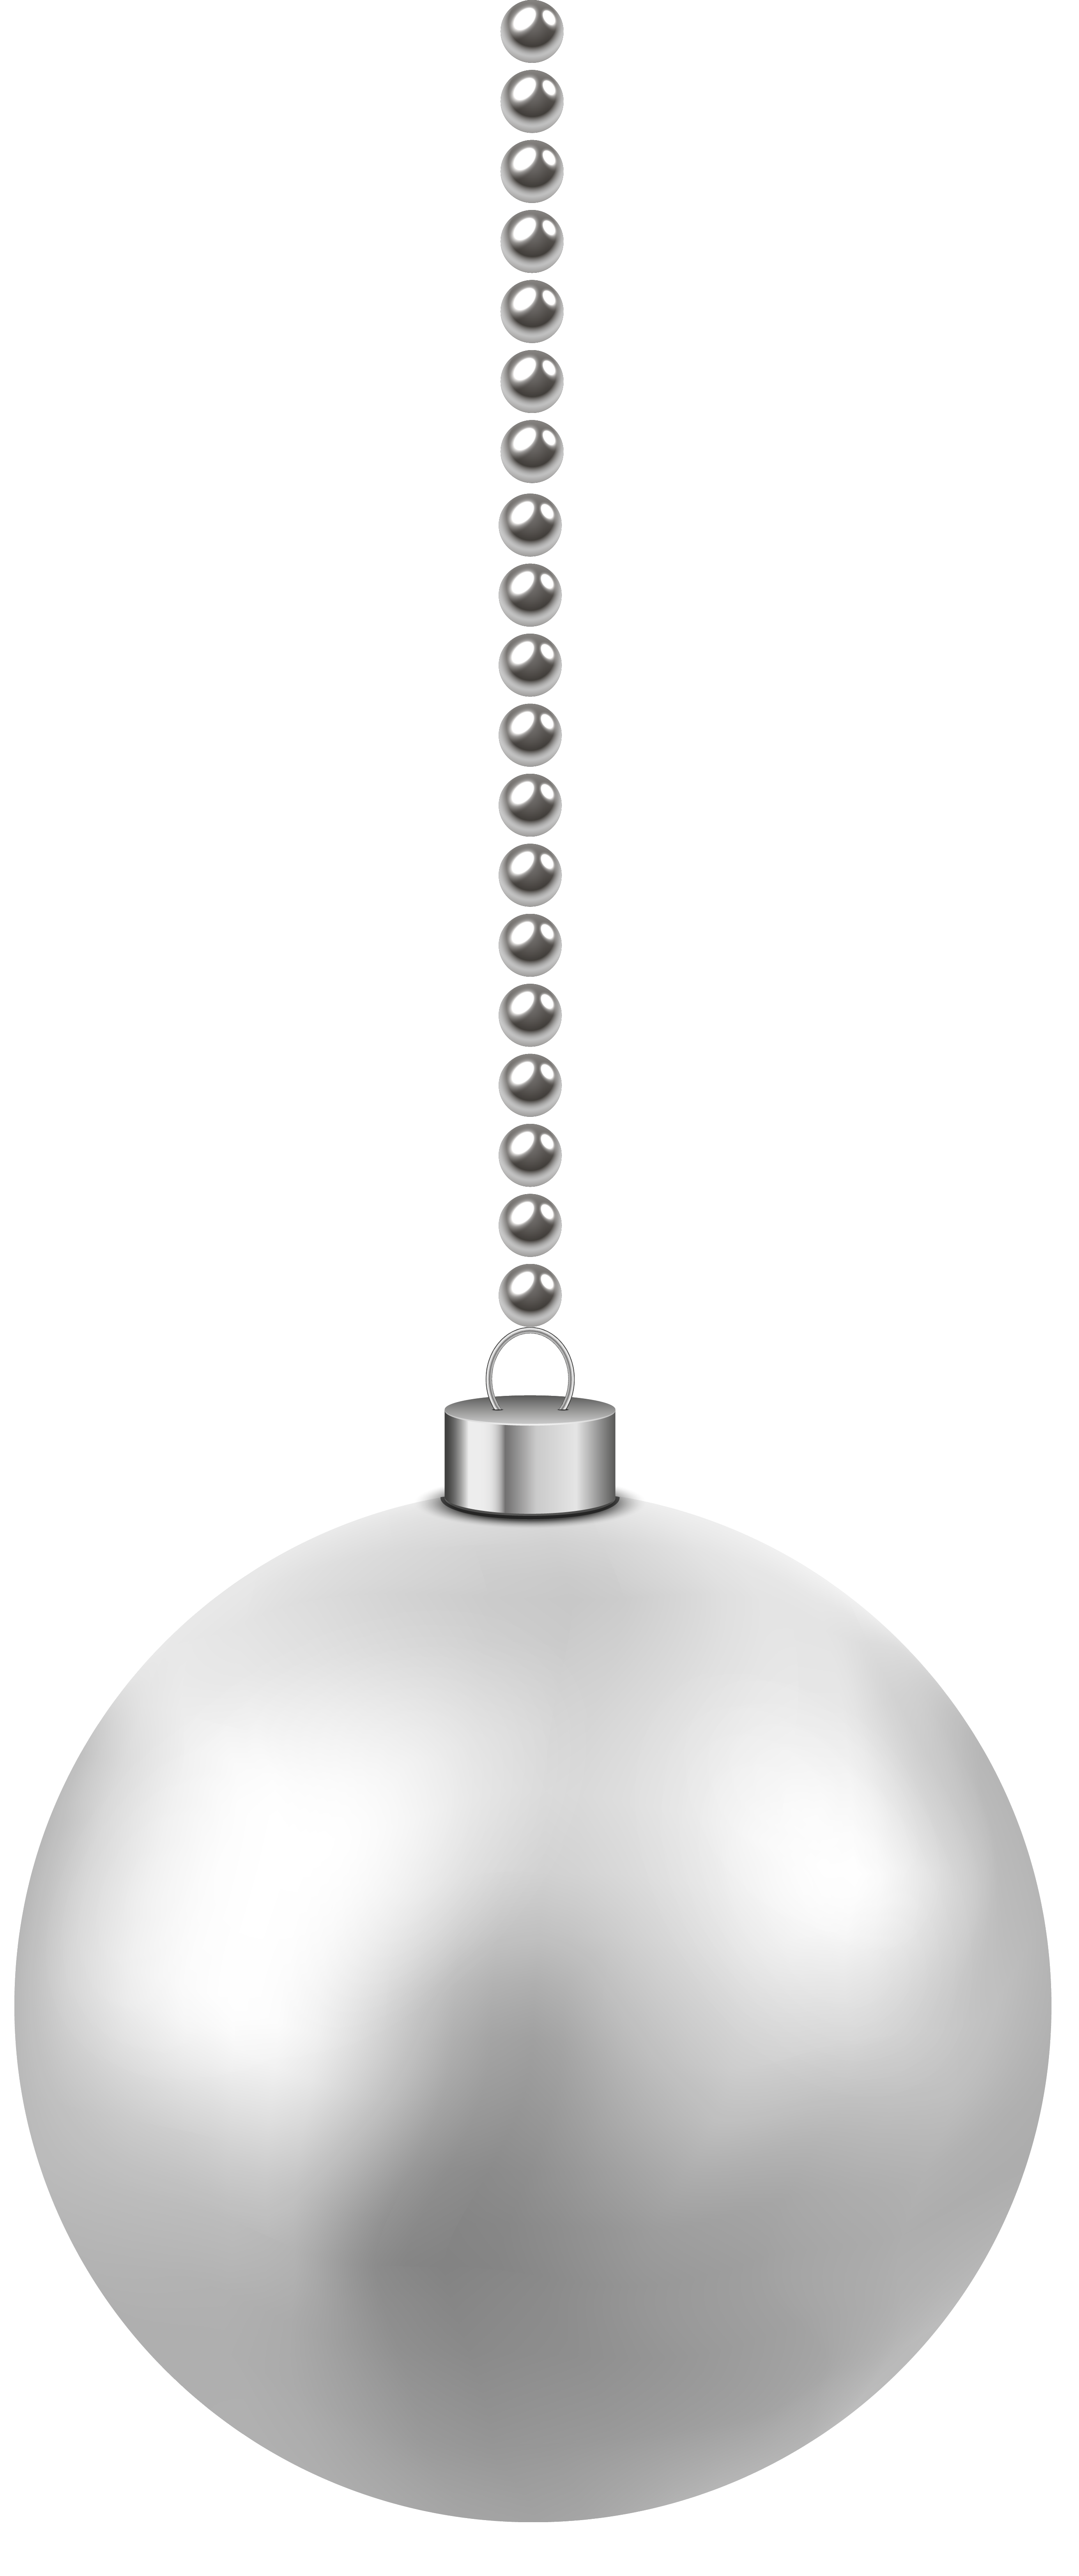 Free black and white christmas ornament clipart clipart black and white download White Christmas Hanging Ball PNG Clipart Image | Gallery ... clipart black and white download